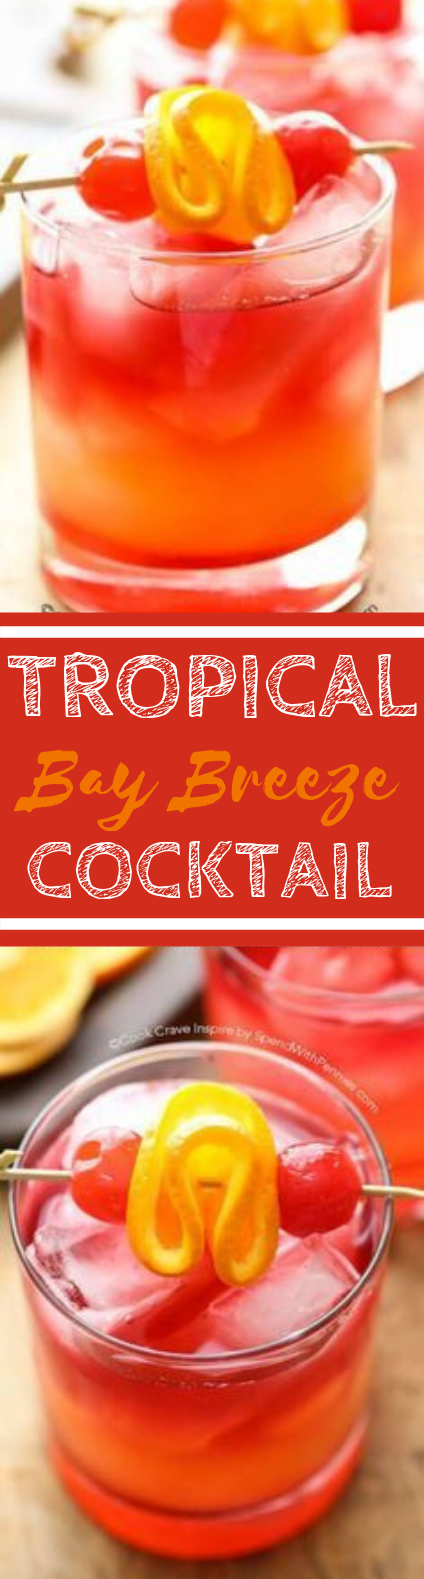 Tropical Bay Breeze Cocktail #drinks #cocktails